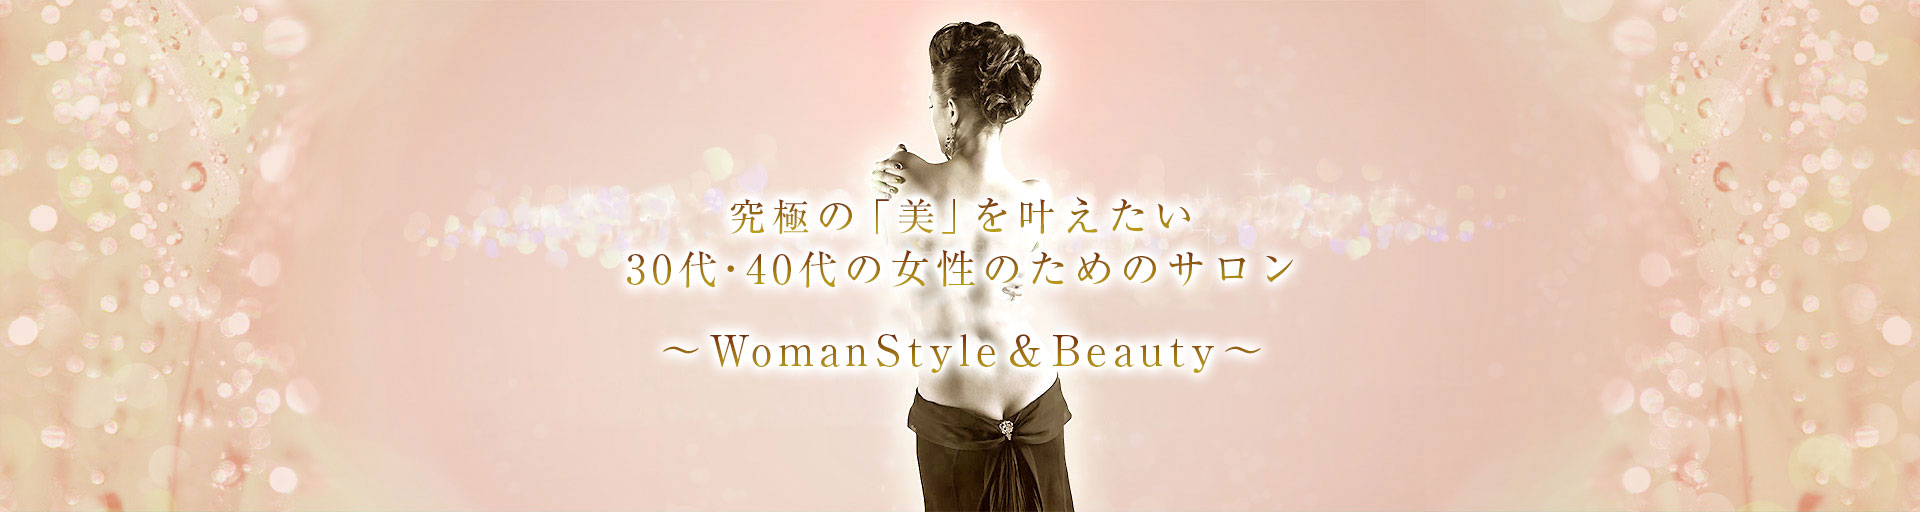 Womanstyle&Beauty